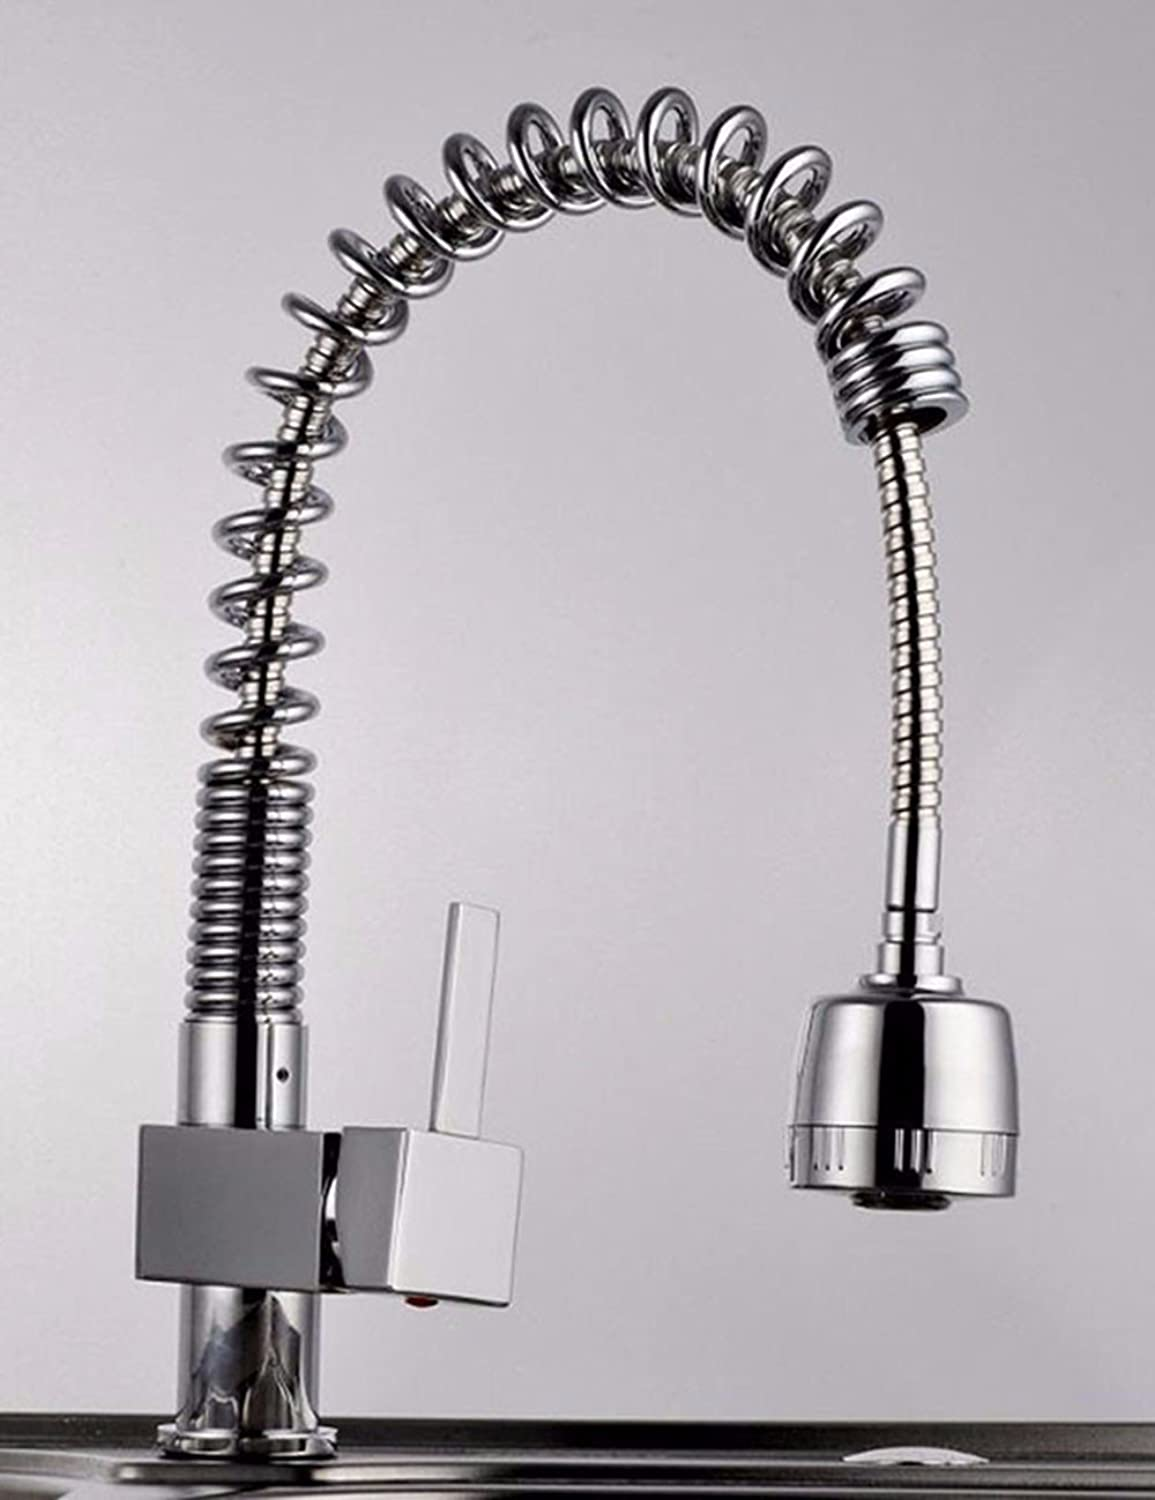 QMPZG-Pull the kitchen faucet, water single type spring pulling redating kitchen faucet